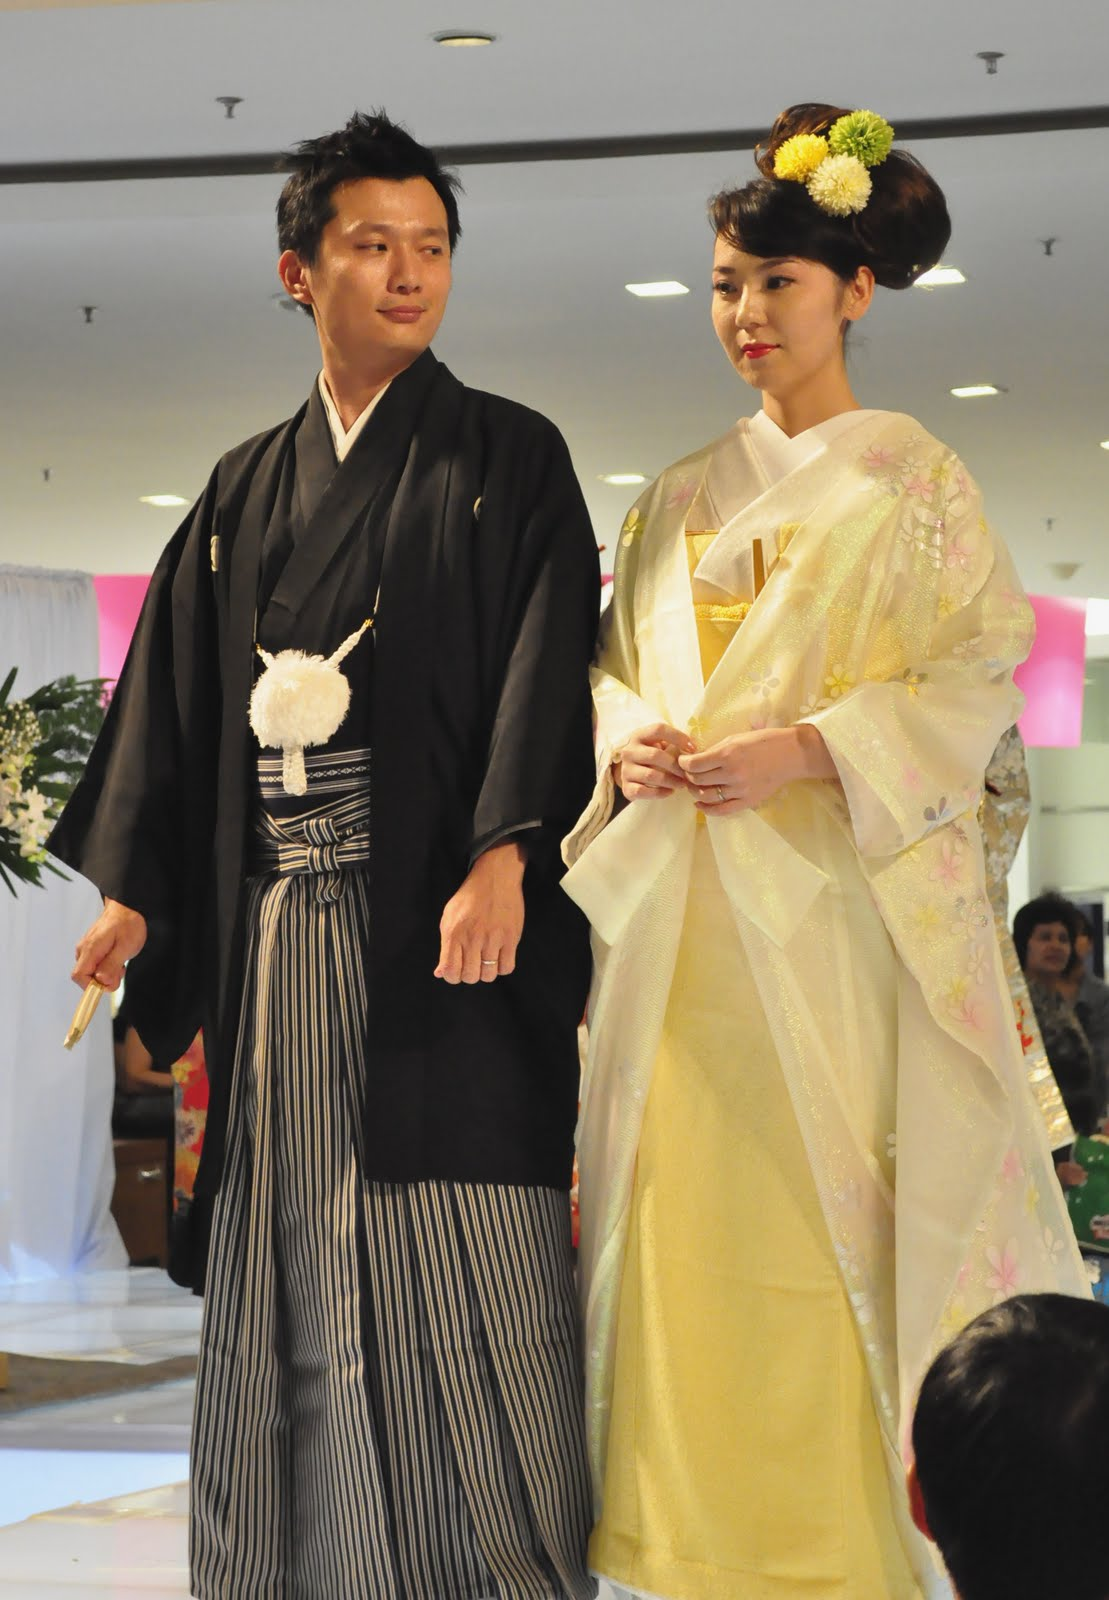 Japanese wedding dress yellow wedding dress which